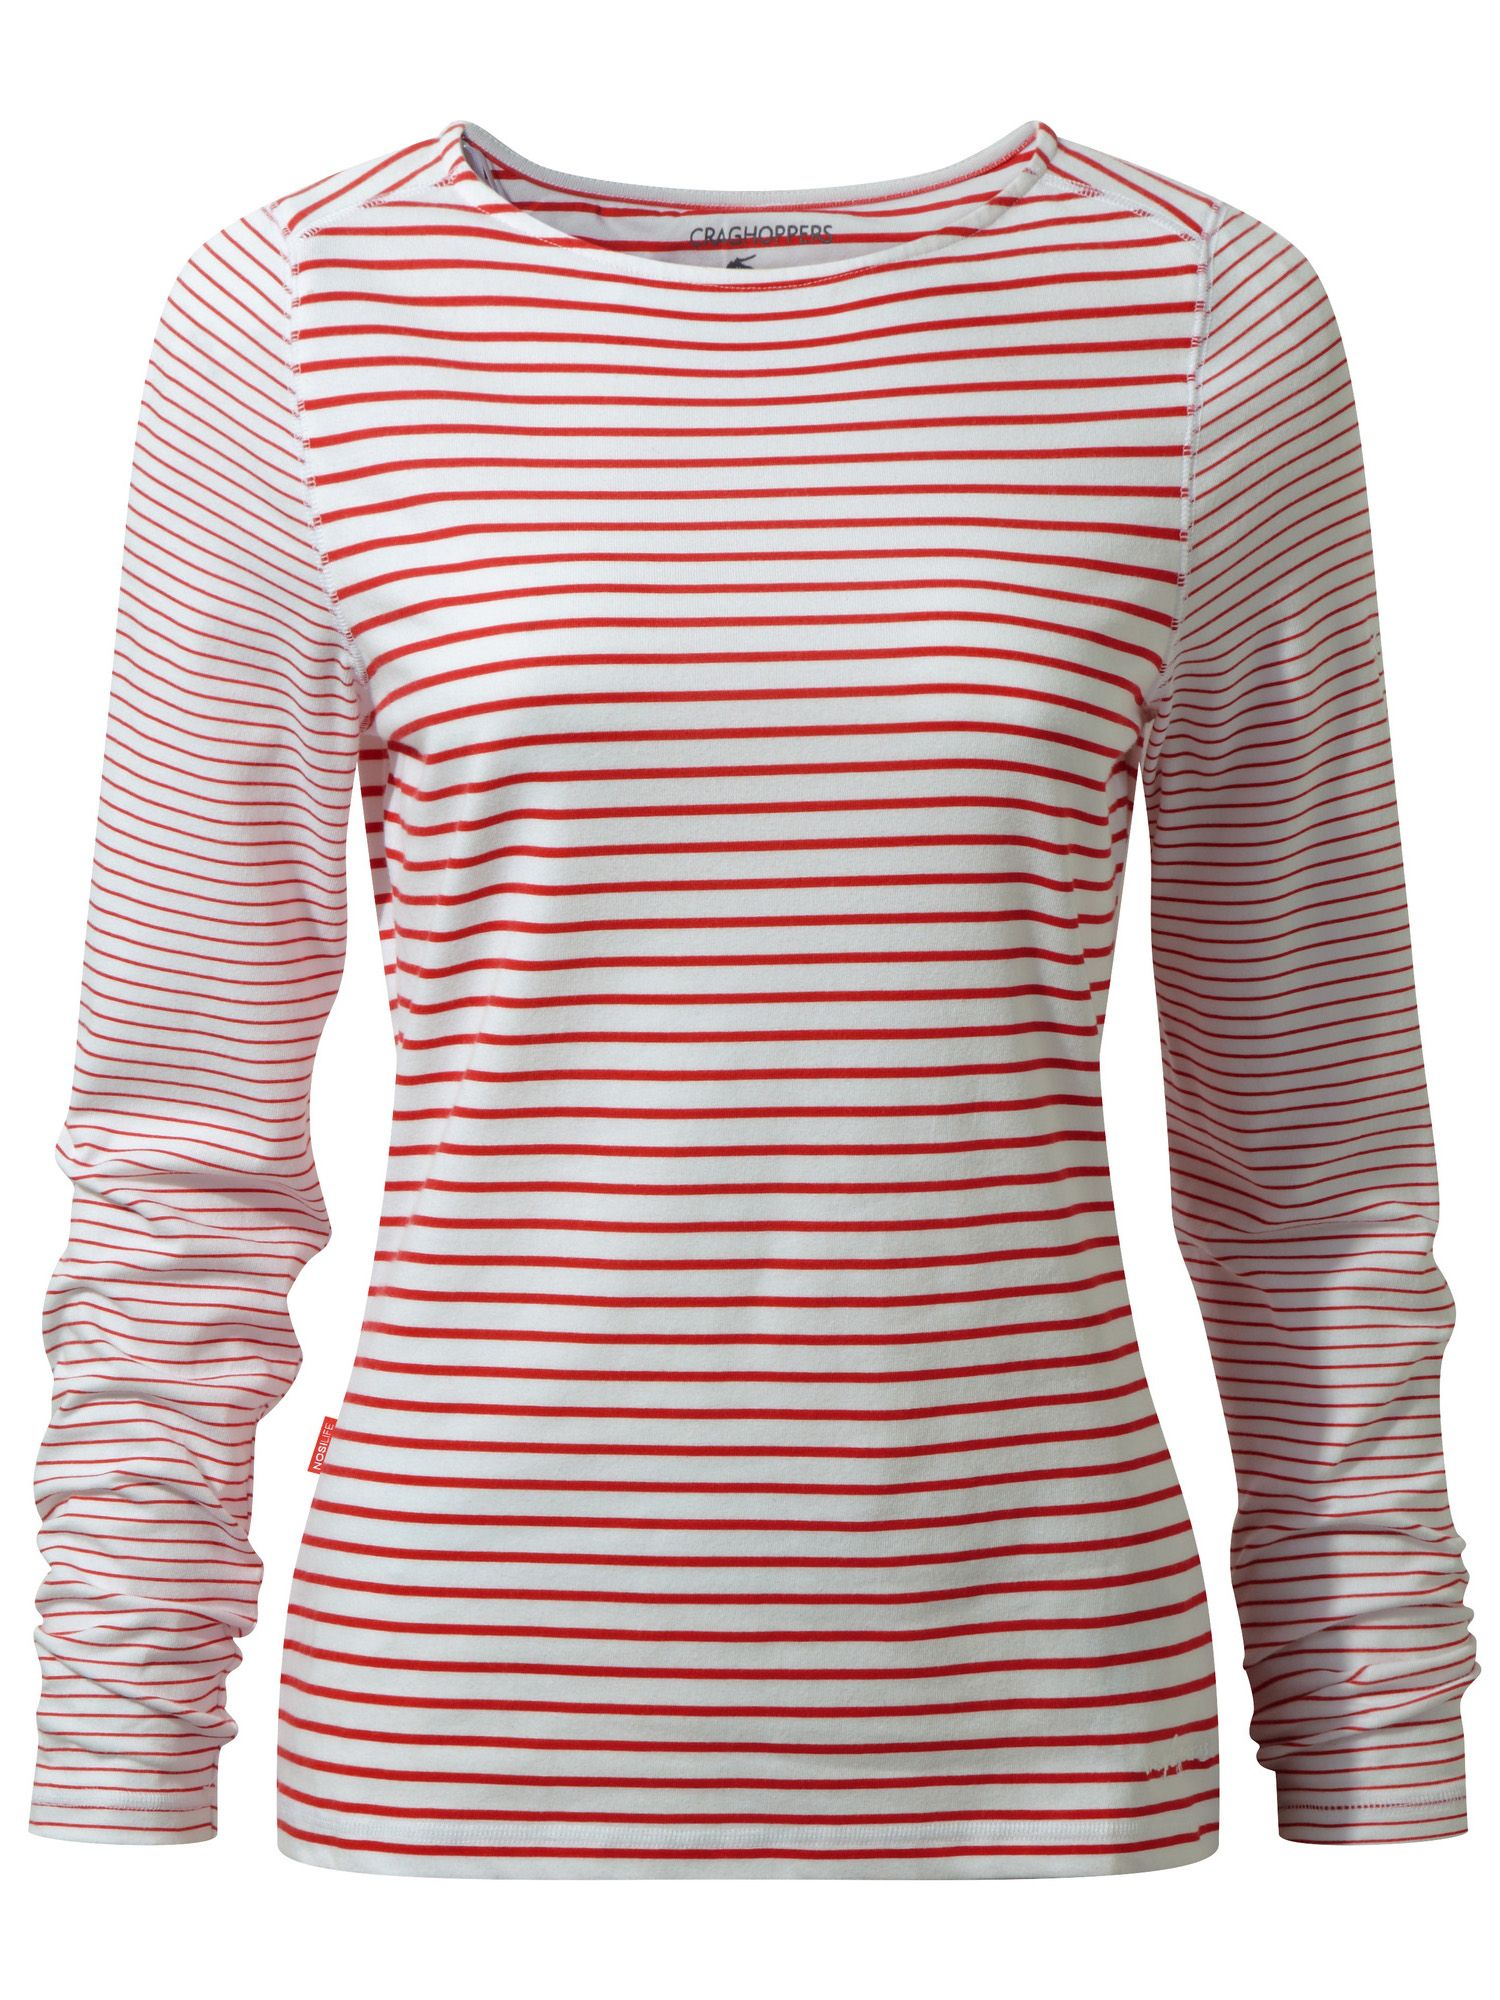 Craghoppers NosiLife Erin Long Sleeved Top, Red